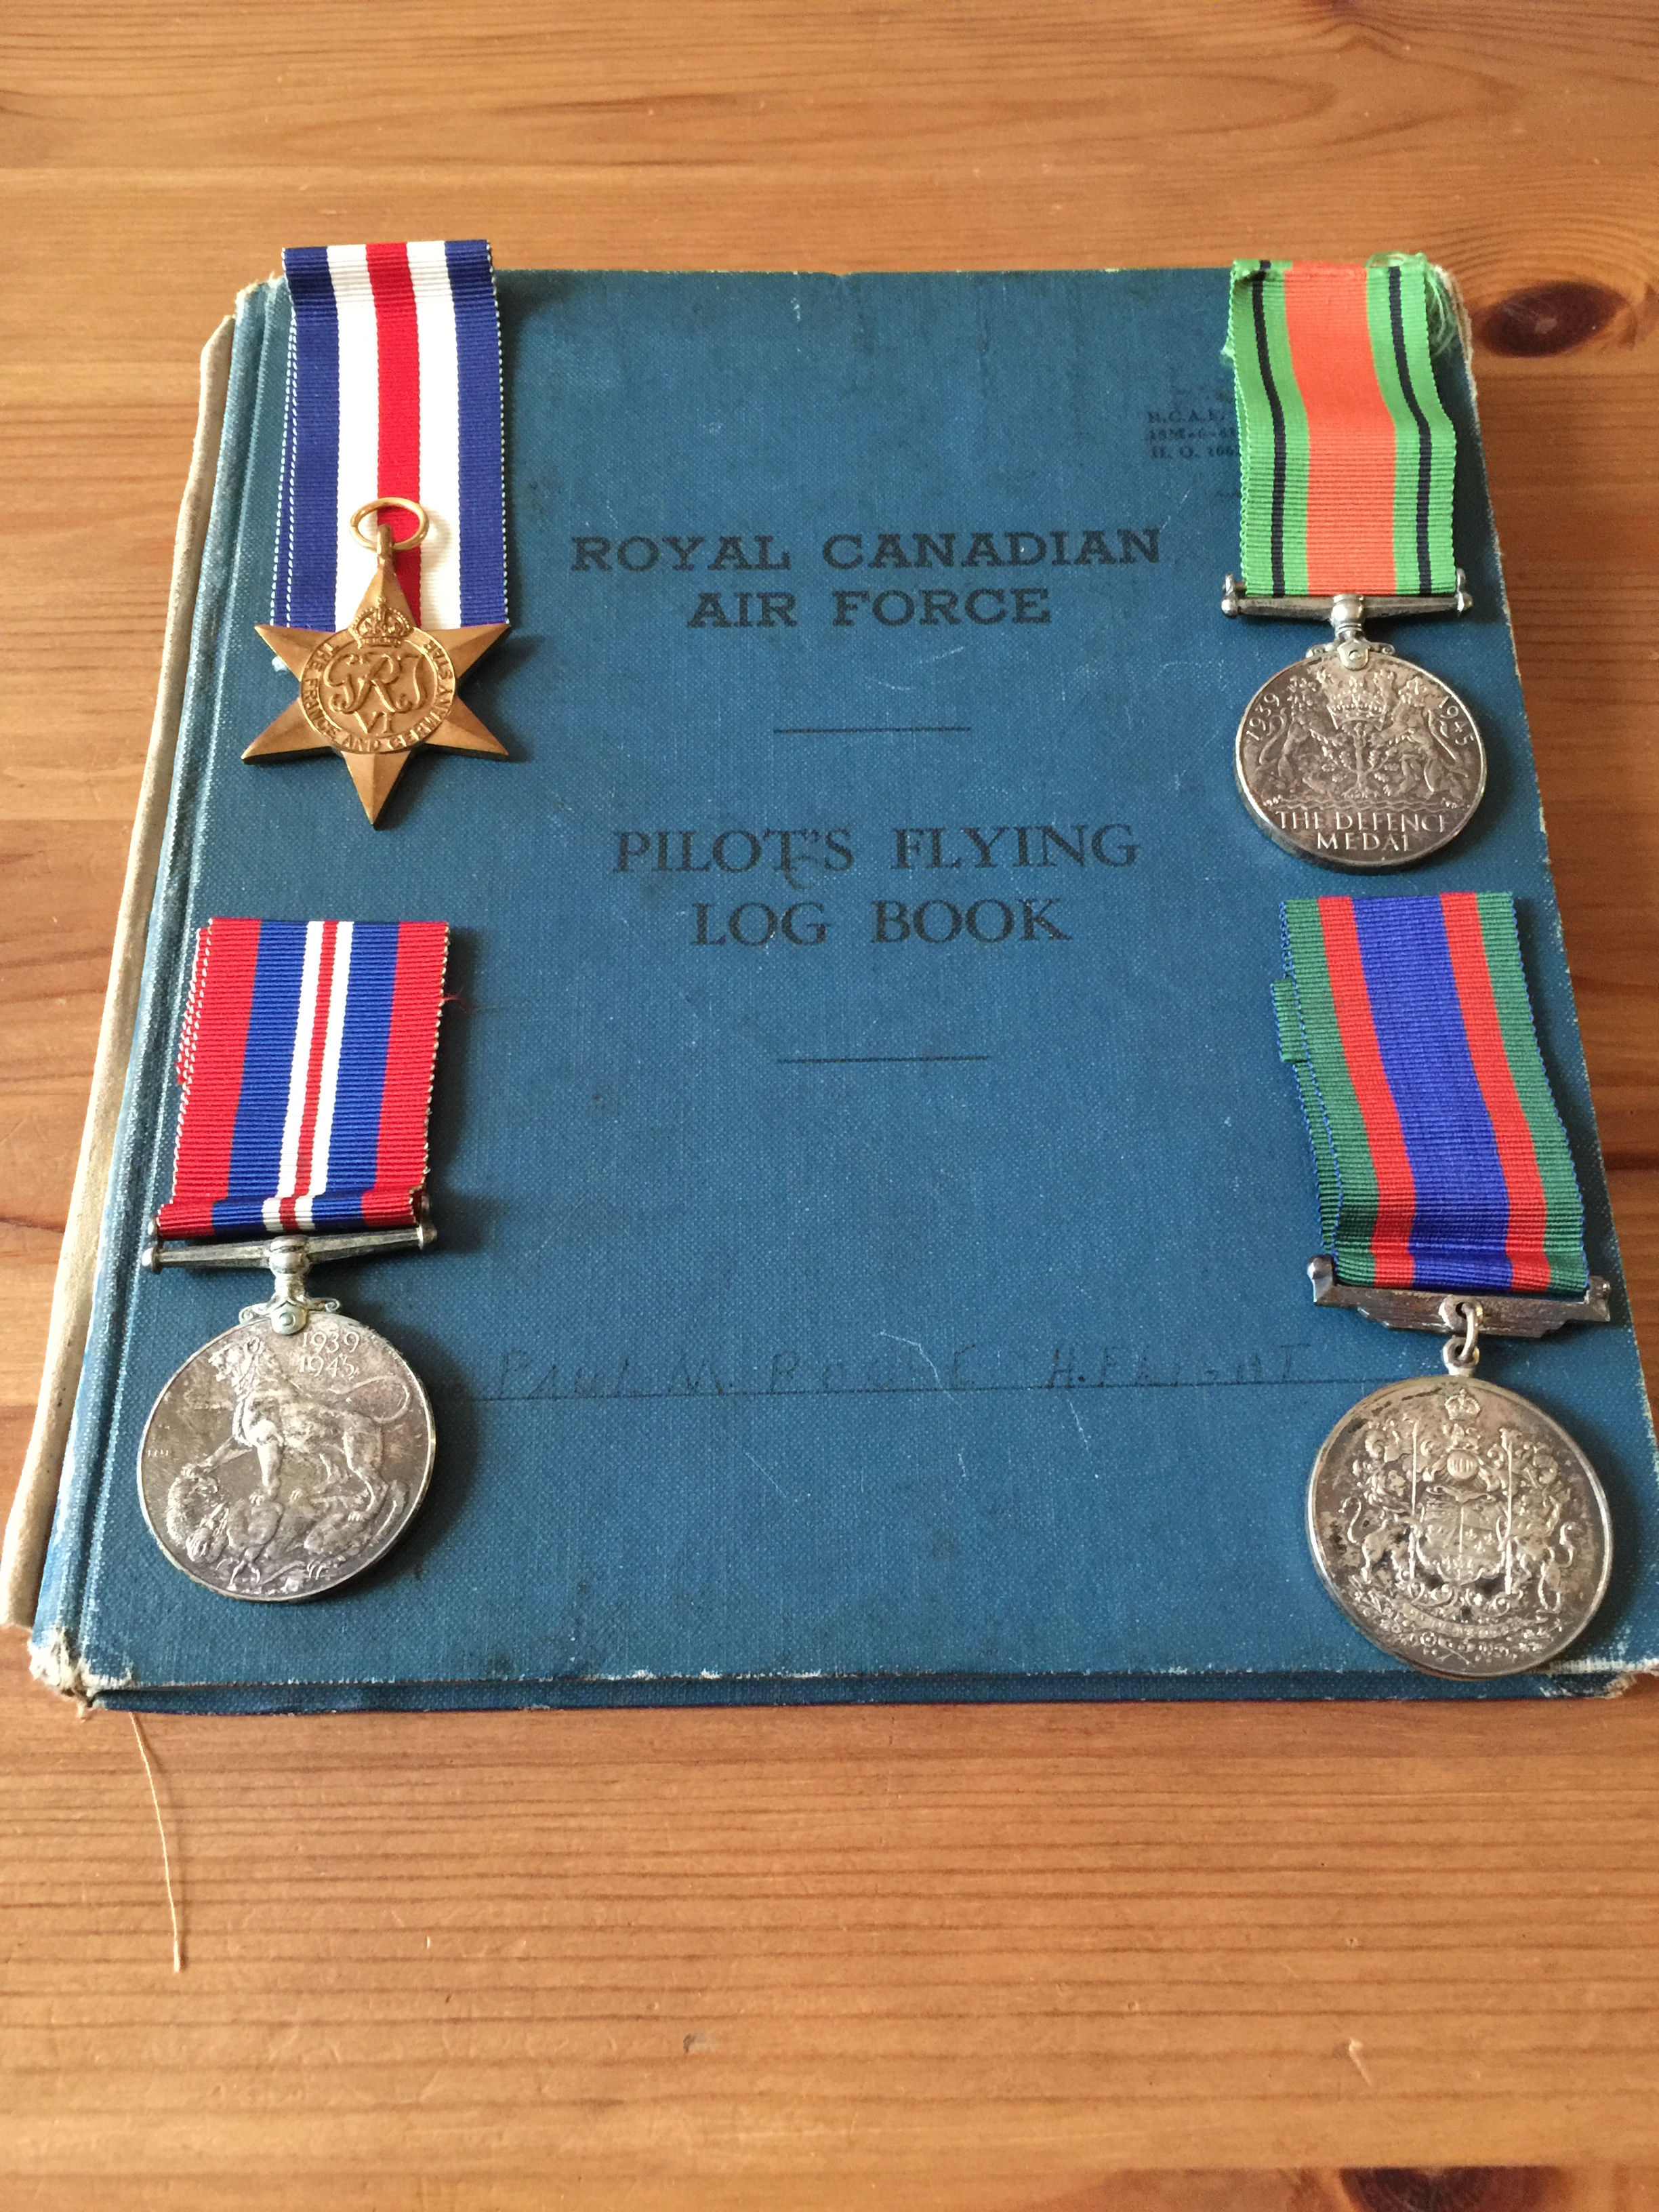 Paul's service medals and RCAF flight log